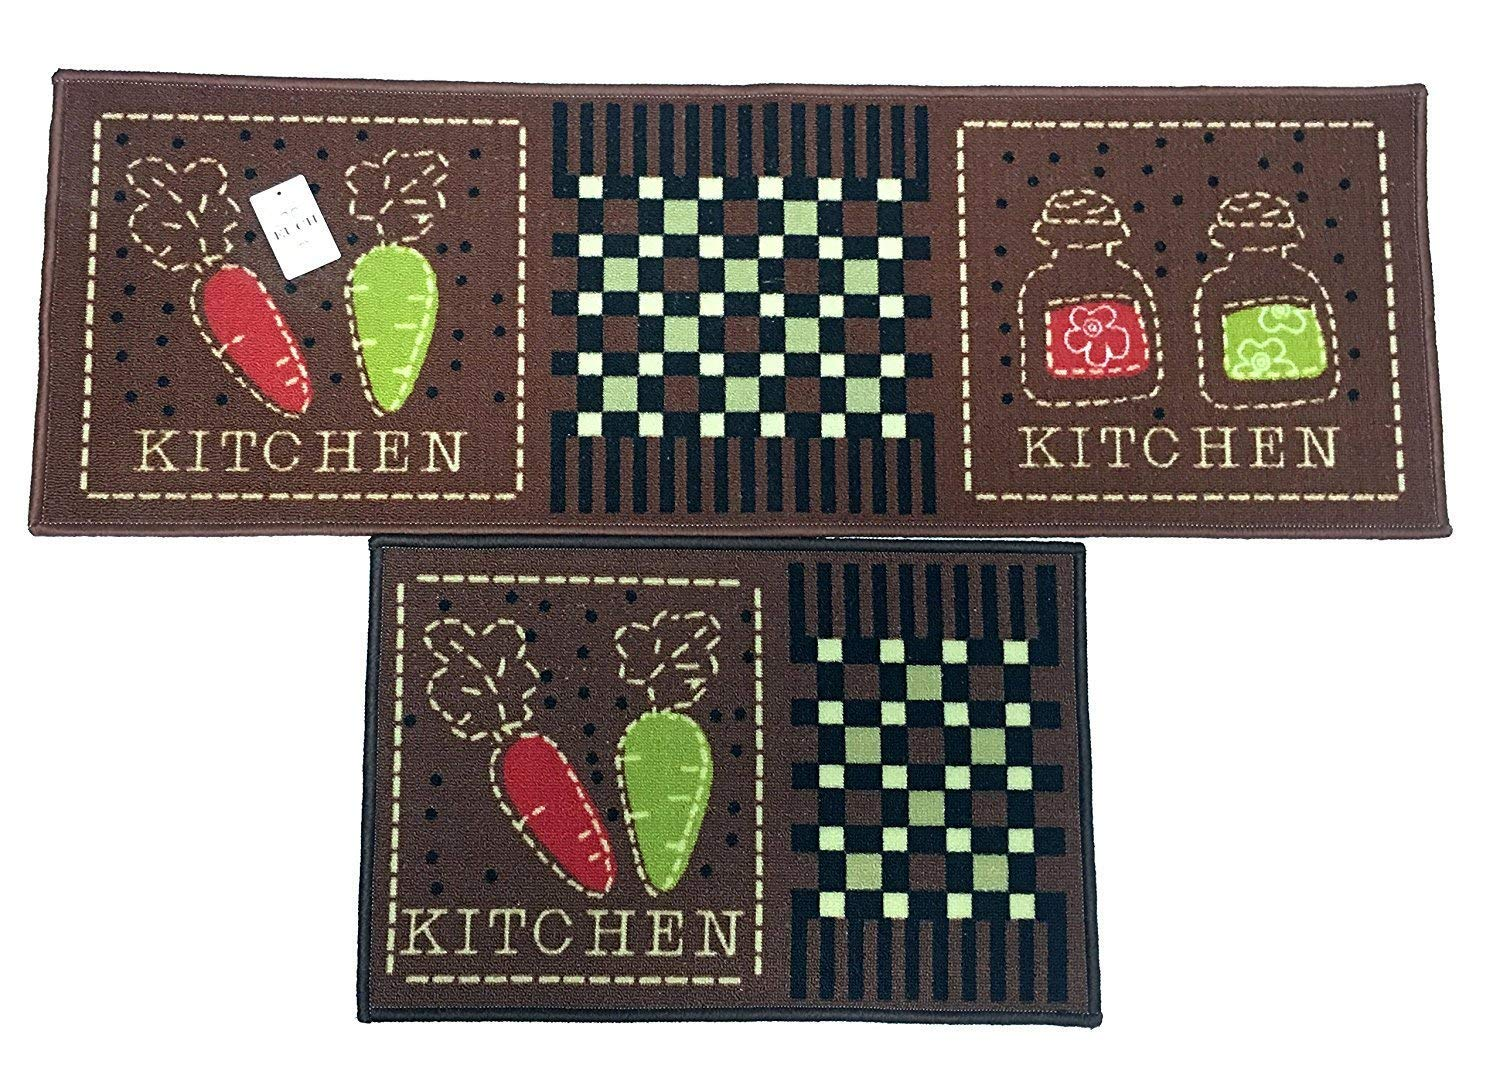 EUCH Non-slip Rubber Backing Carpet Kitchen Mat Doormat Runner Bathroom Rug 2 Piece Sets,15''x47''+15''x23'' (carrot-brown)